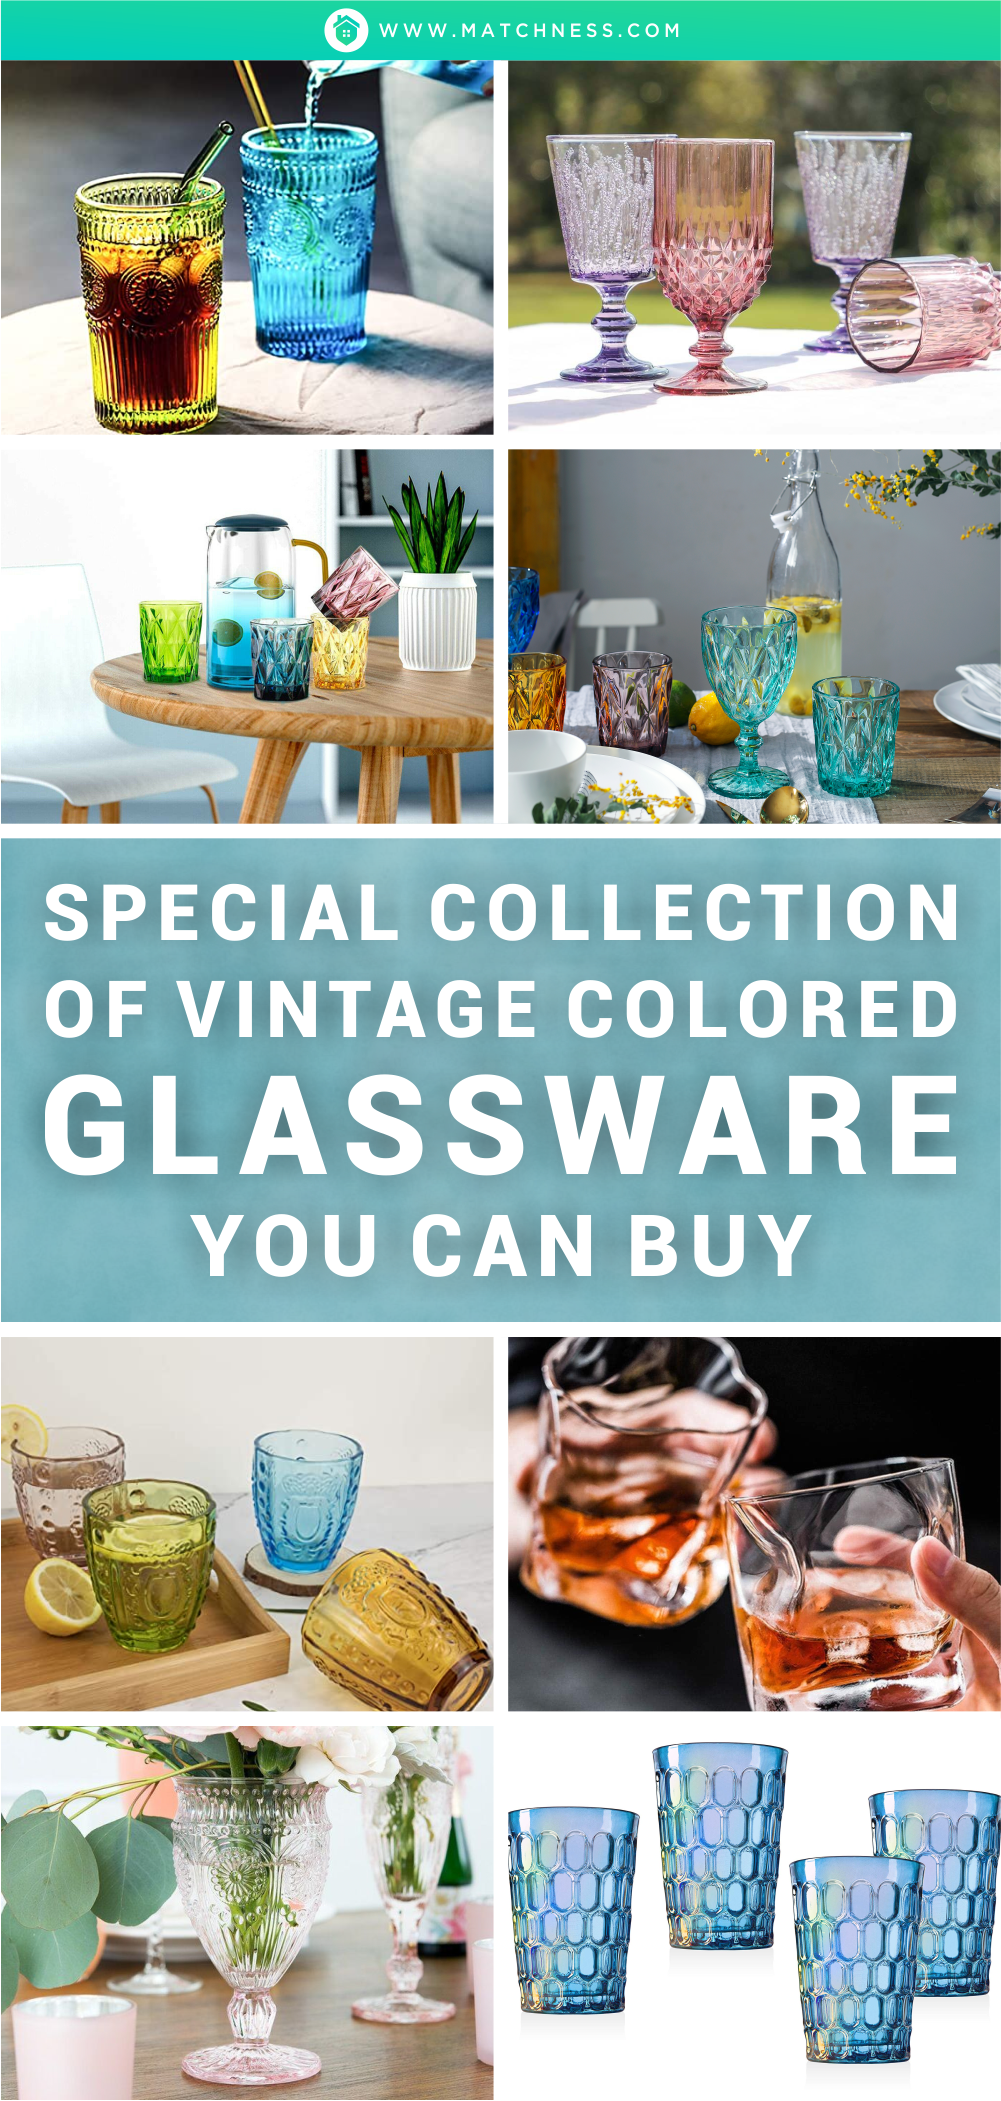 Special-collection-of-vintage-colored-glassware-you-can-buy-1